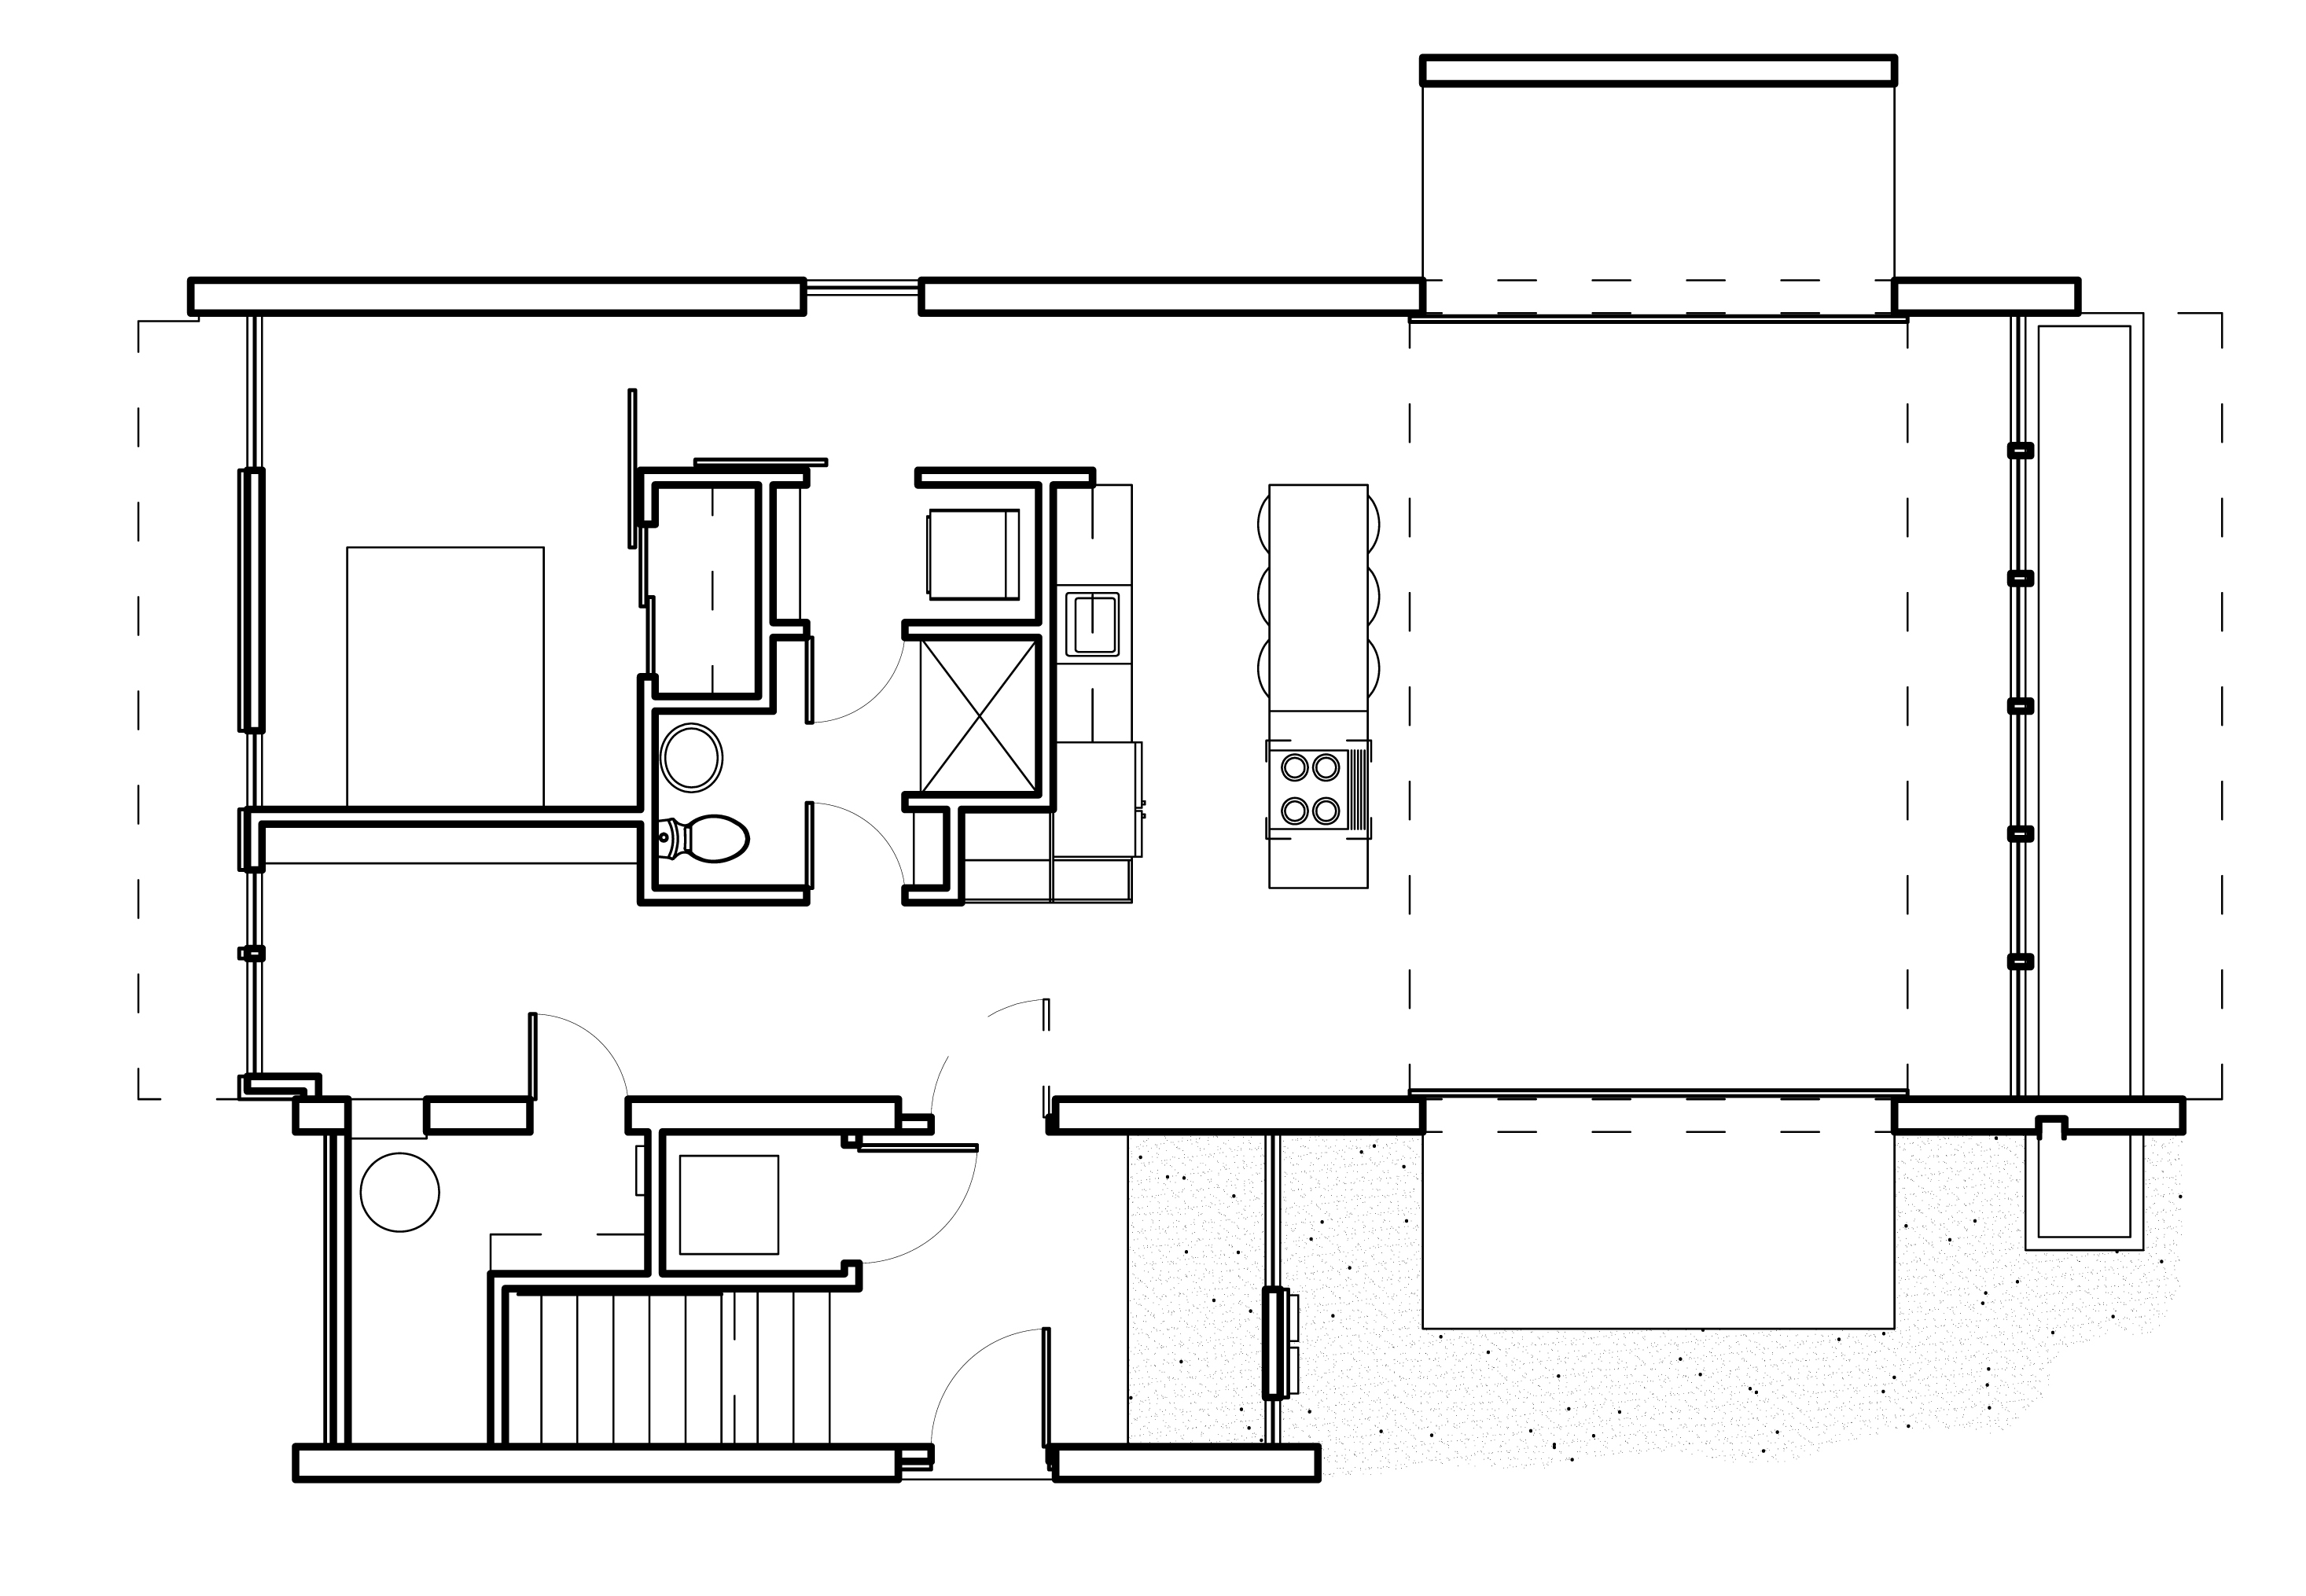 modern house plans contemporary home designs floor plan 02